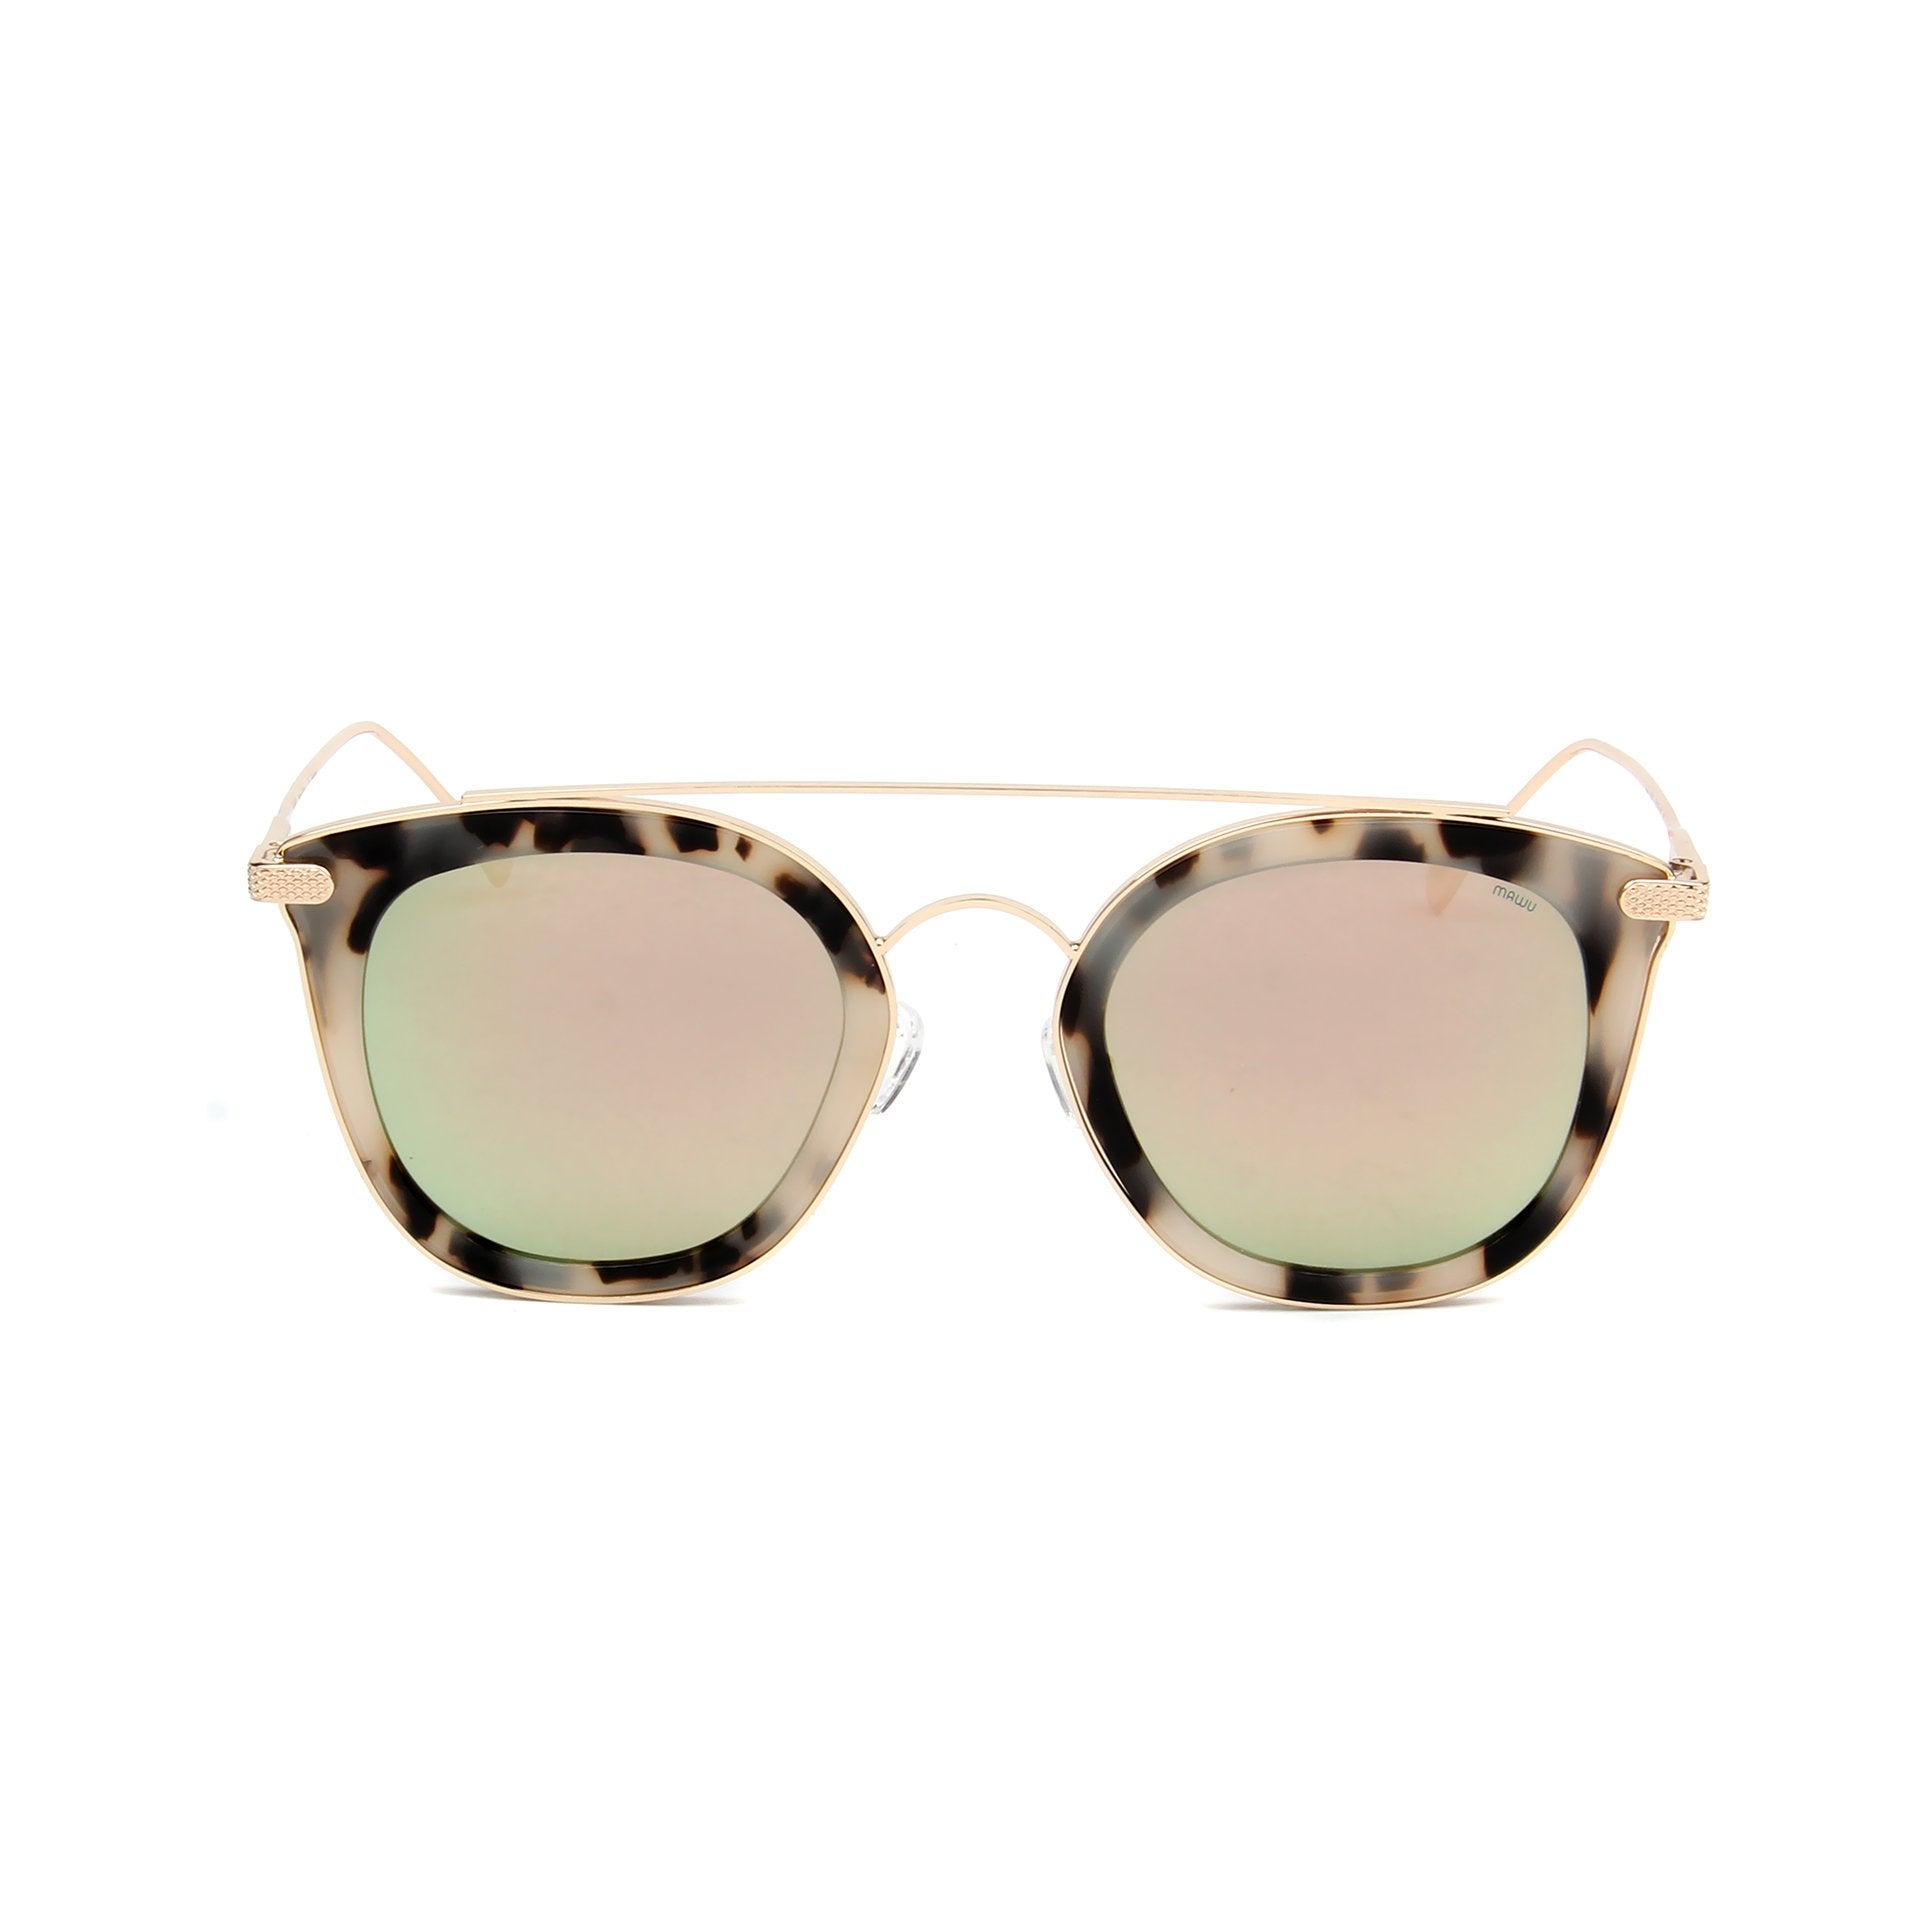 Julie Cream Tortoise - Front View - Pink Mirror lens - Mawu Sunglasses